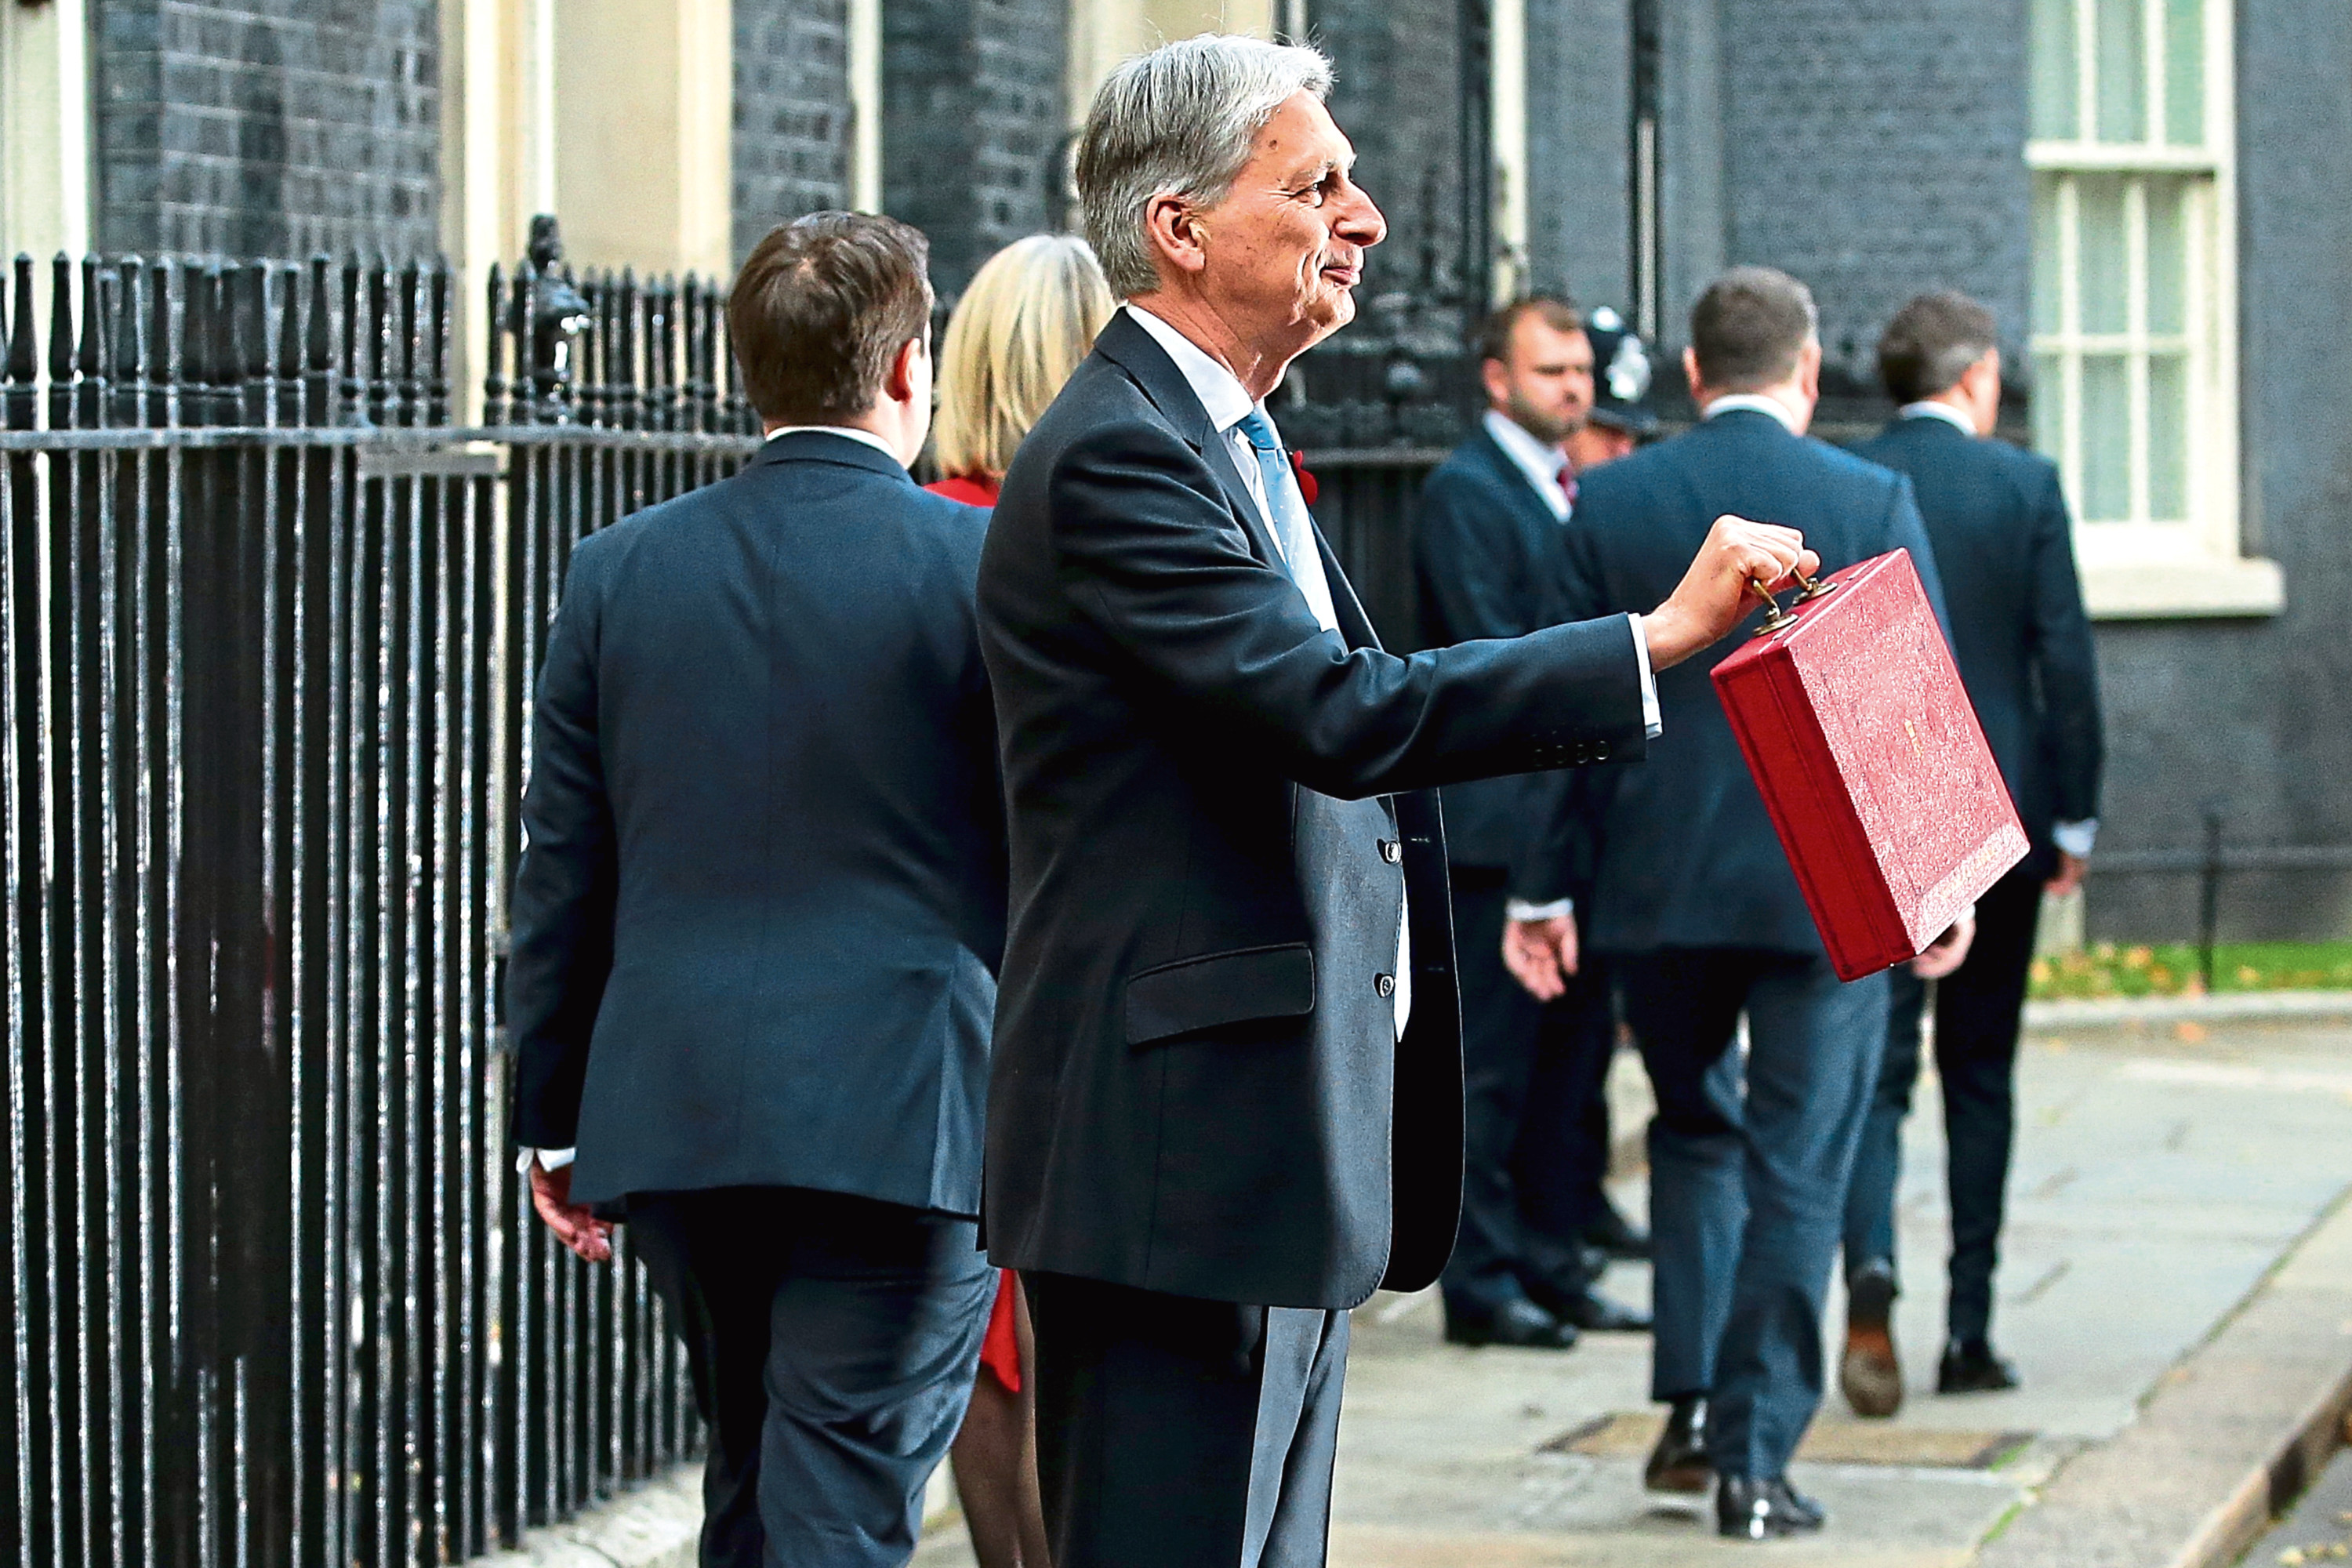 Chancellor of the Exchequer, Philip Hammond, presents the red Budget Box as he departs 11 Downing Street to deliver his 2018 budget announcement to Parliament.